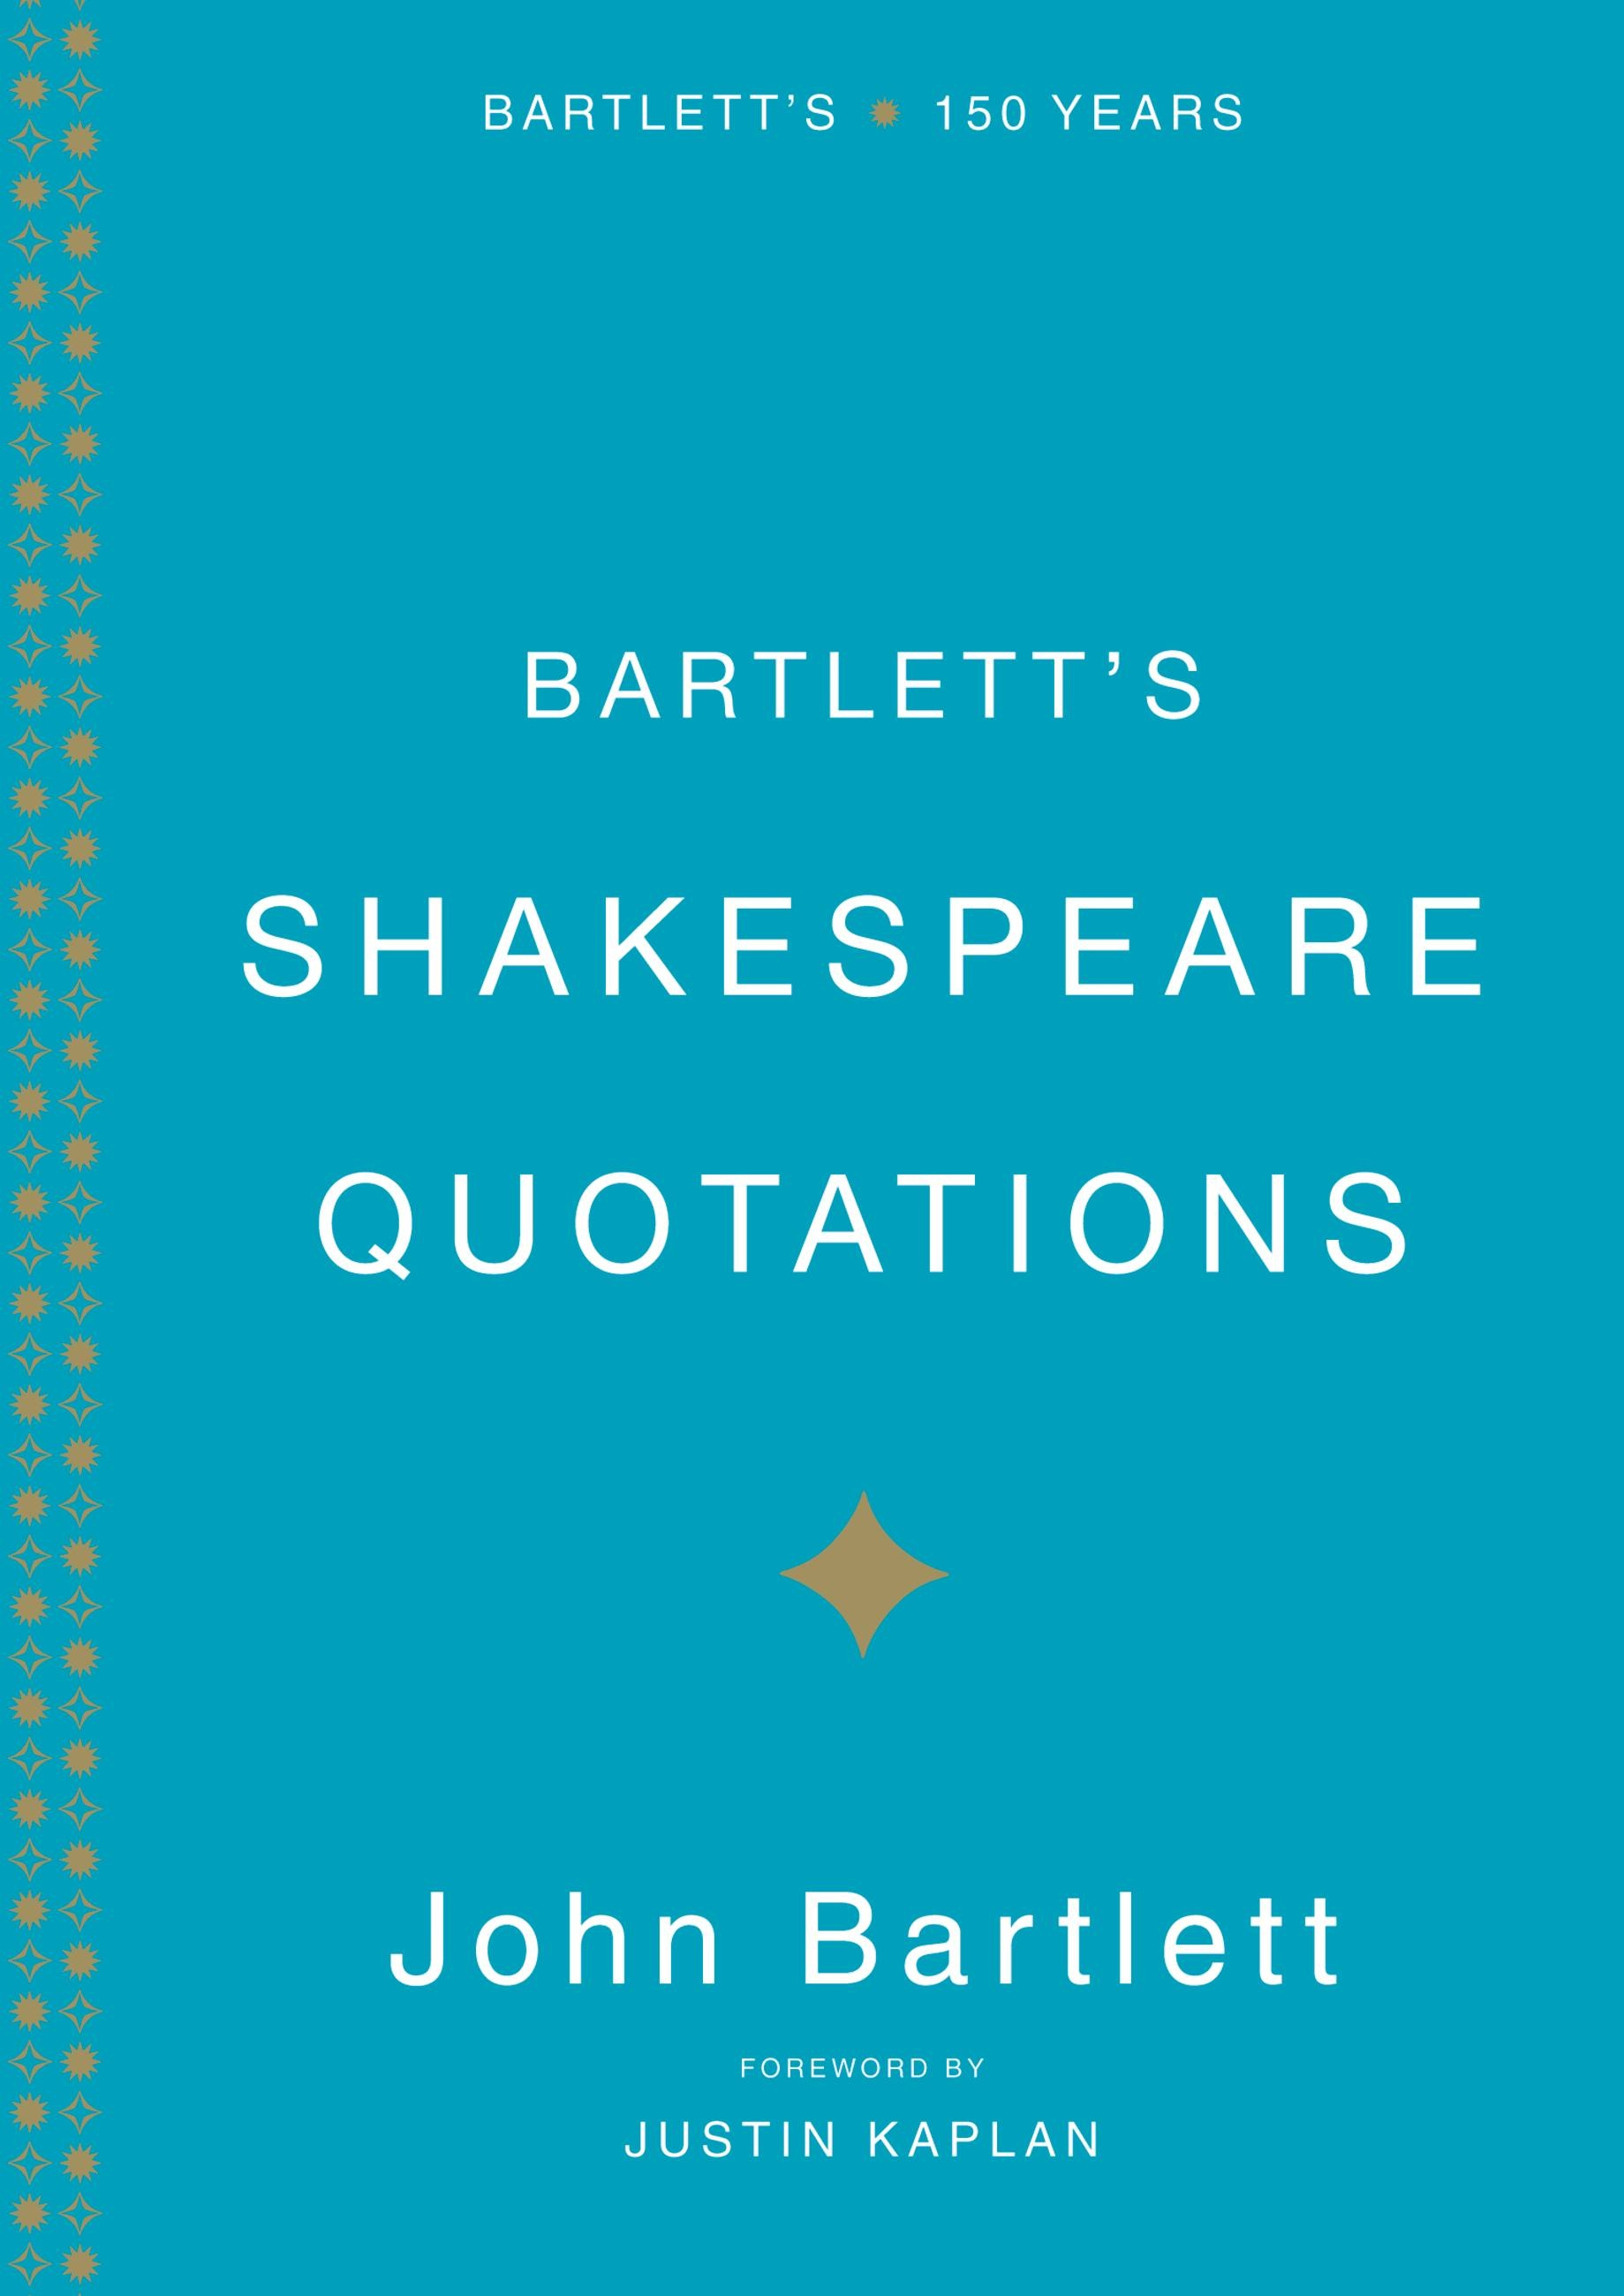 bartletts quotations